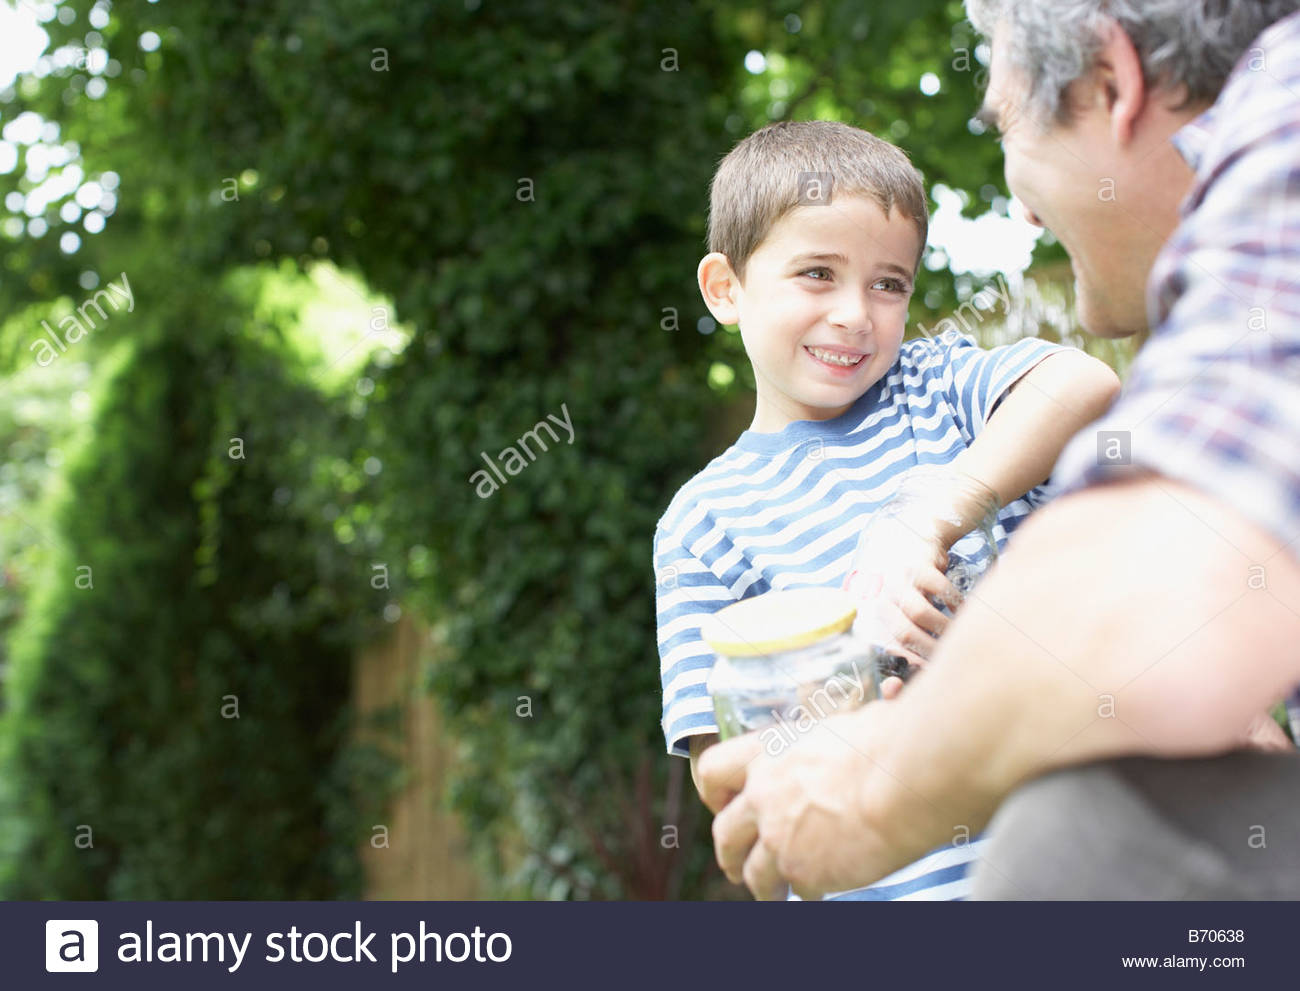 Grandfather and grandson holding insect jar - Stock Image